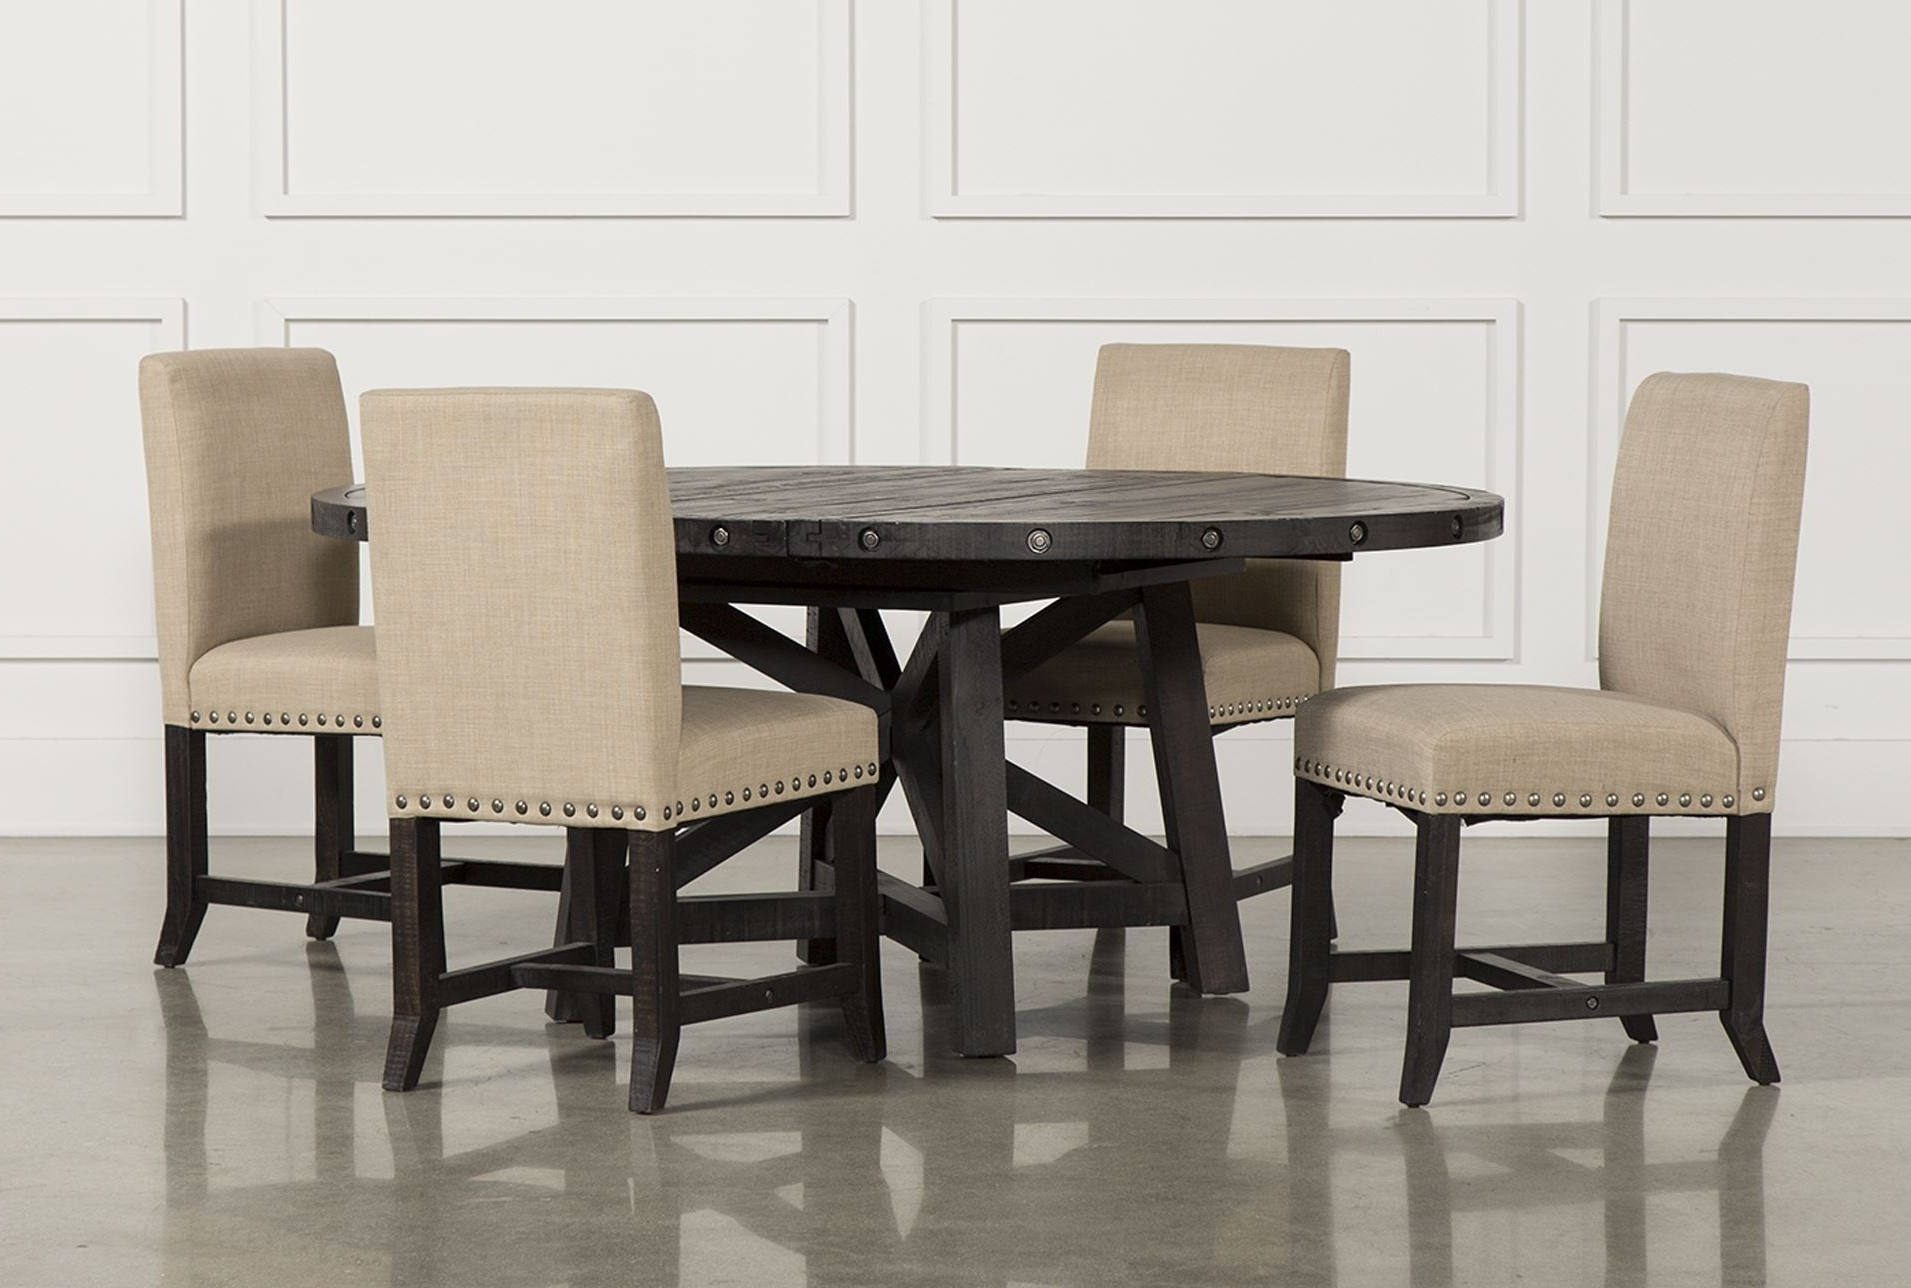 Chapleau Ii 7 Piece Extension Dining Table Sets Inside Newest Dining Tables (View 21 of 25)